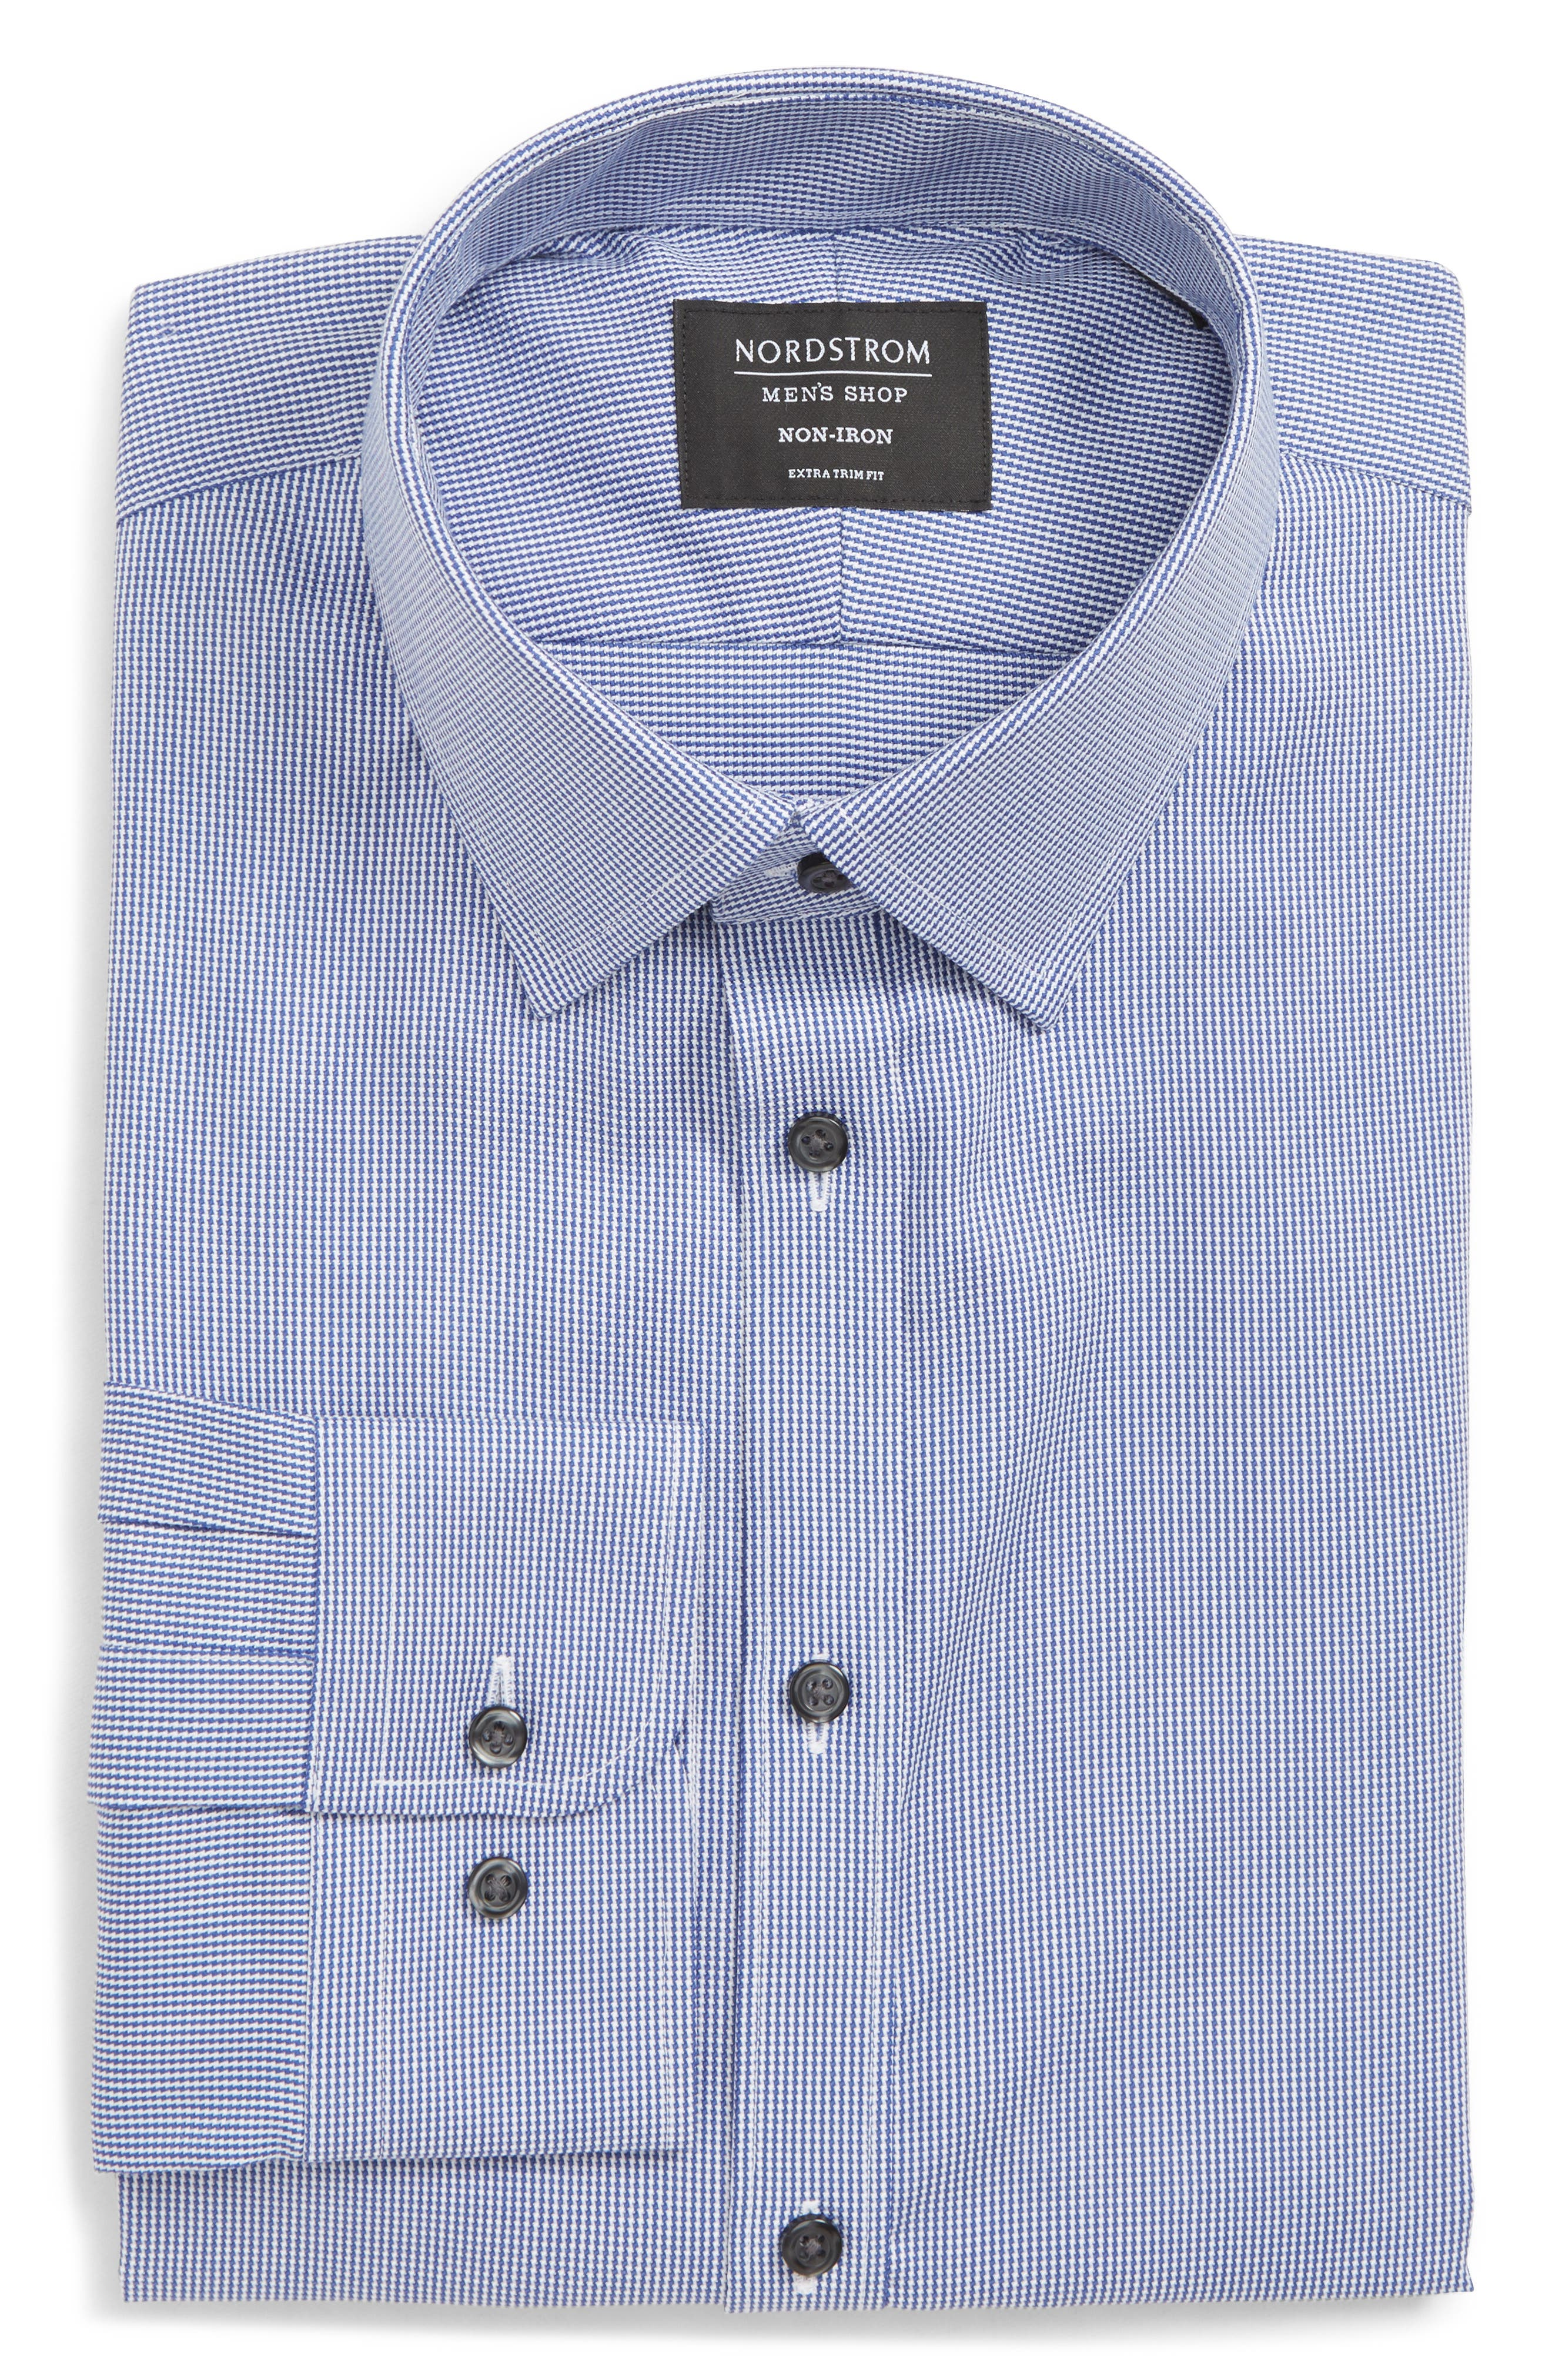 Extra Trim Fit Non-Iron Solid Dress Shirt,                         Main,                         color, NAVY DRESS